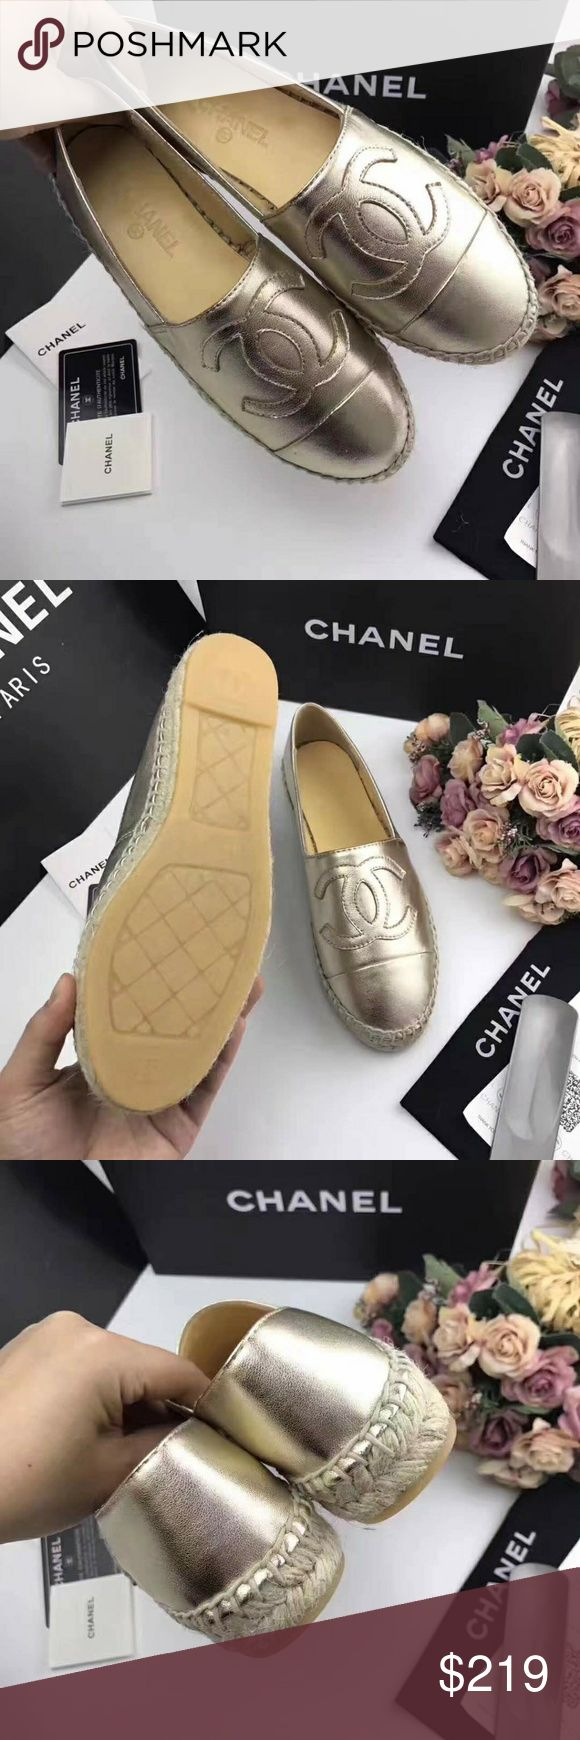 Chanel Espadrilles Inspired by designer Espadrilles, that why price is low. Geniue buttery soft lambskin leather. Run small order full size up. Delivery might take up 2 weeks. No trades. No returns or exchanges. For size measurements look my other listings. size eu 36 = 22,5 - 23 cm, size eu 37 = 23 - 23,5 cm, size eu 38 = 23,5 - 24 cm, size eu 39 = 24 - 24,5 cm, size eu 40 = 24,5 - 25 cm, size eu 41 = 25 - 25,5 cm, size eu 42 = 25,5 - 26 cm. Shoes Espadrilles